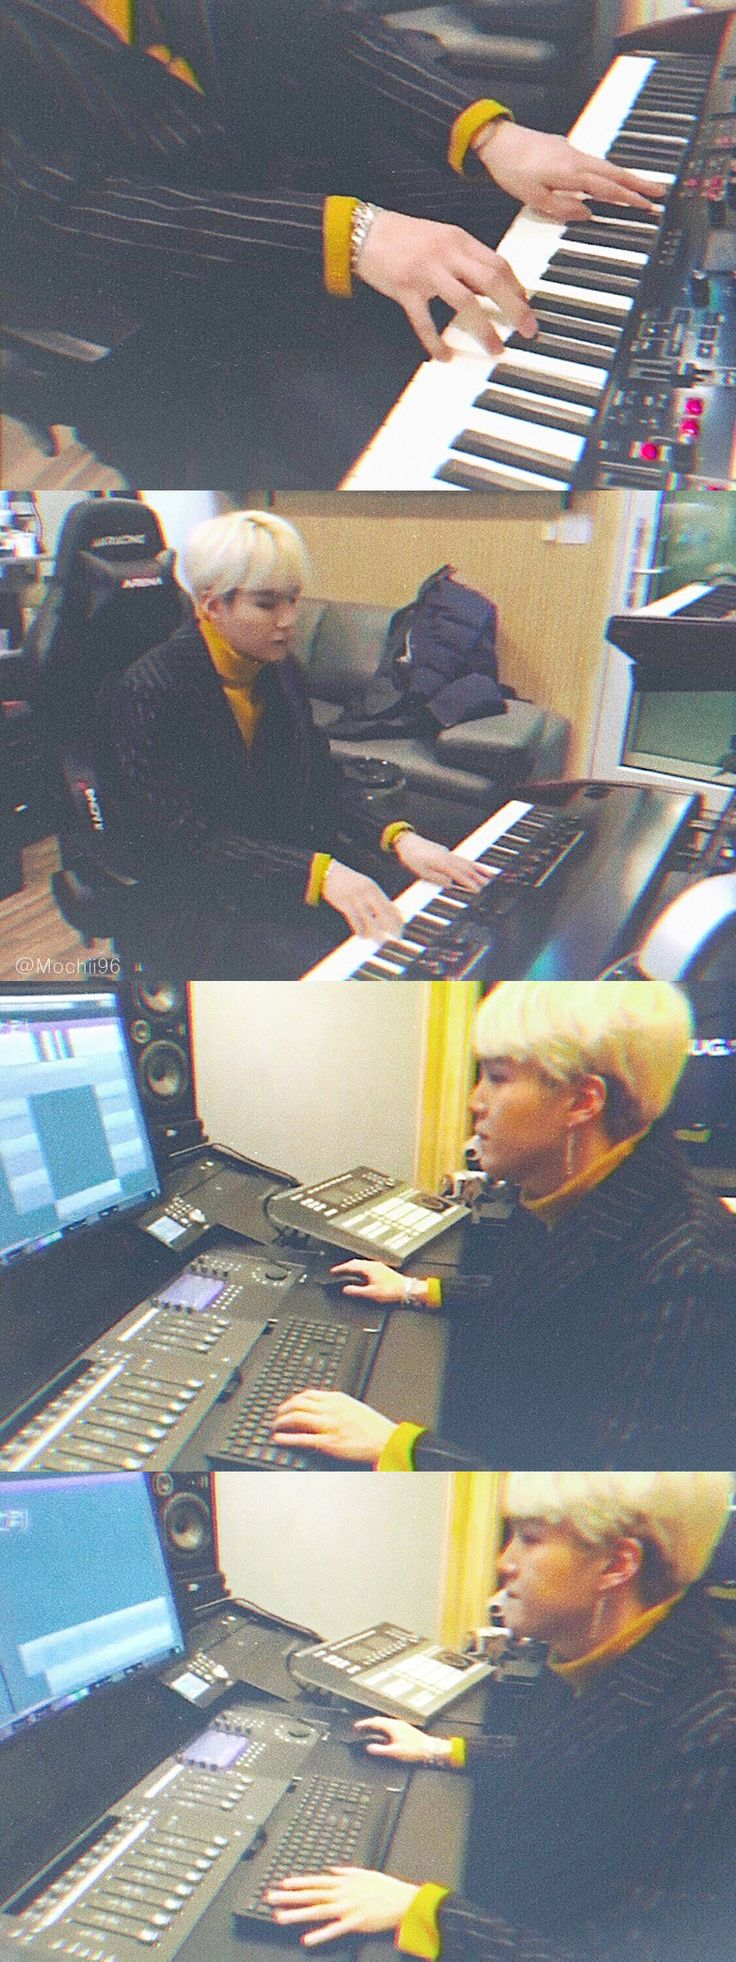 I would give everything just to see him working on his music in person. One day...